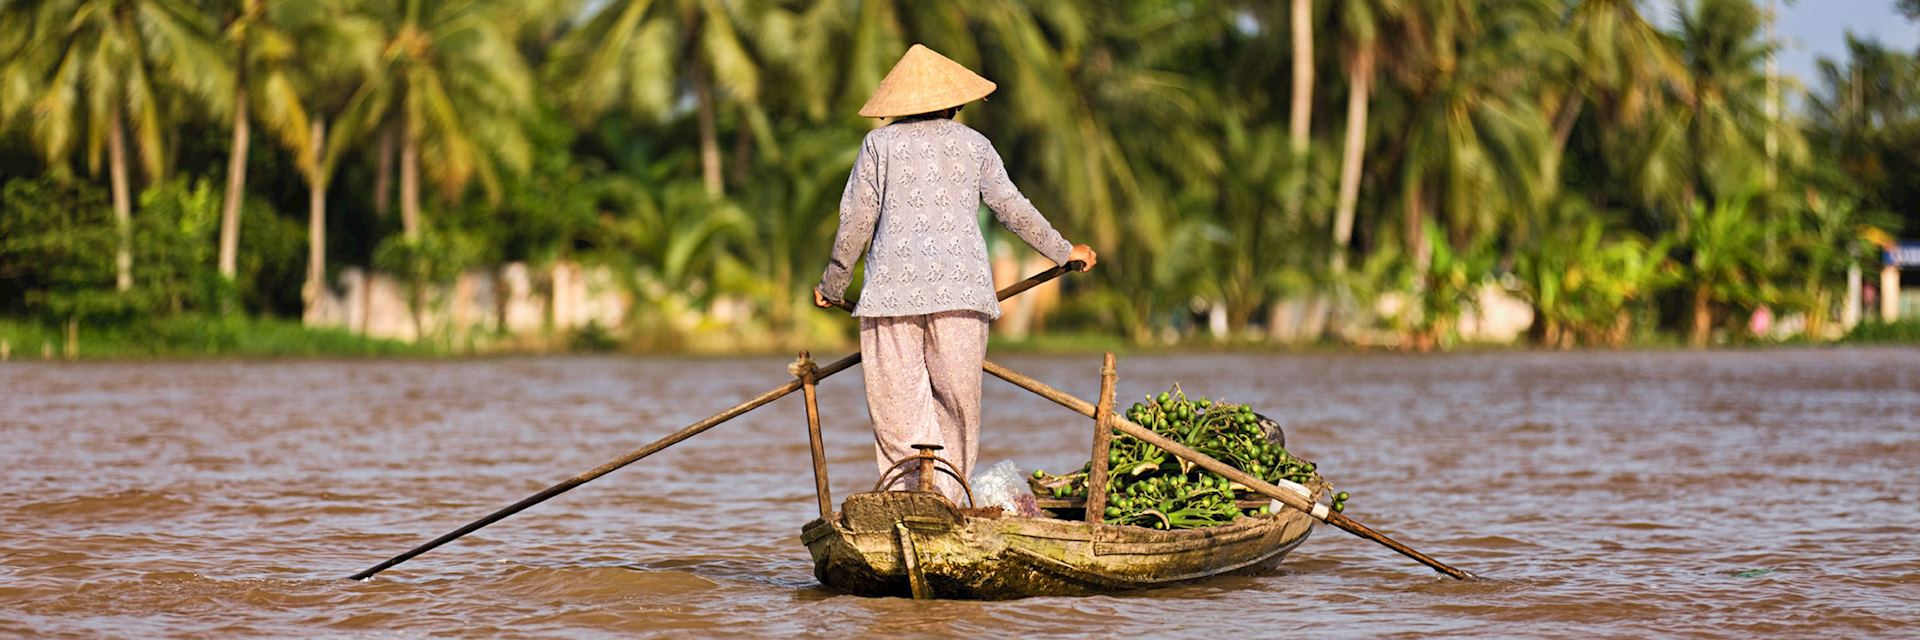 Vietnamese woman rowing a boat in the Mekong River Delta